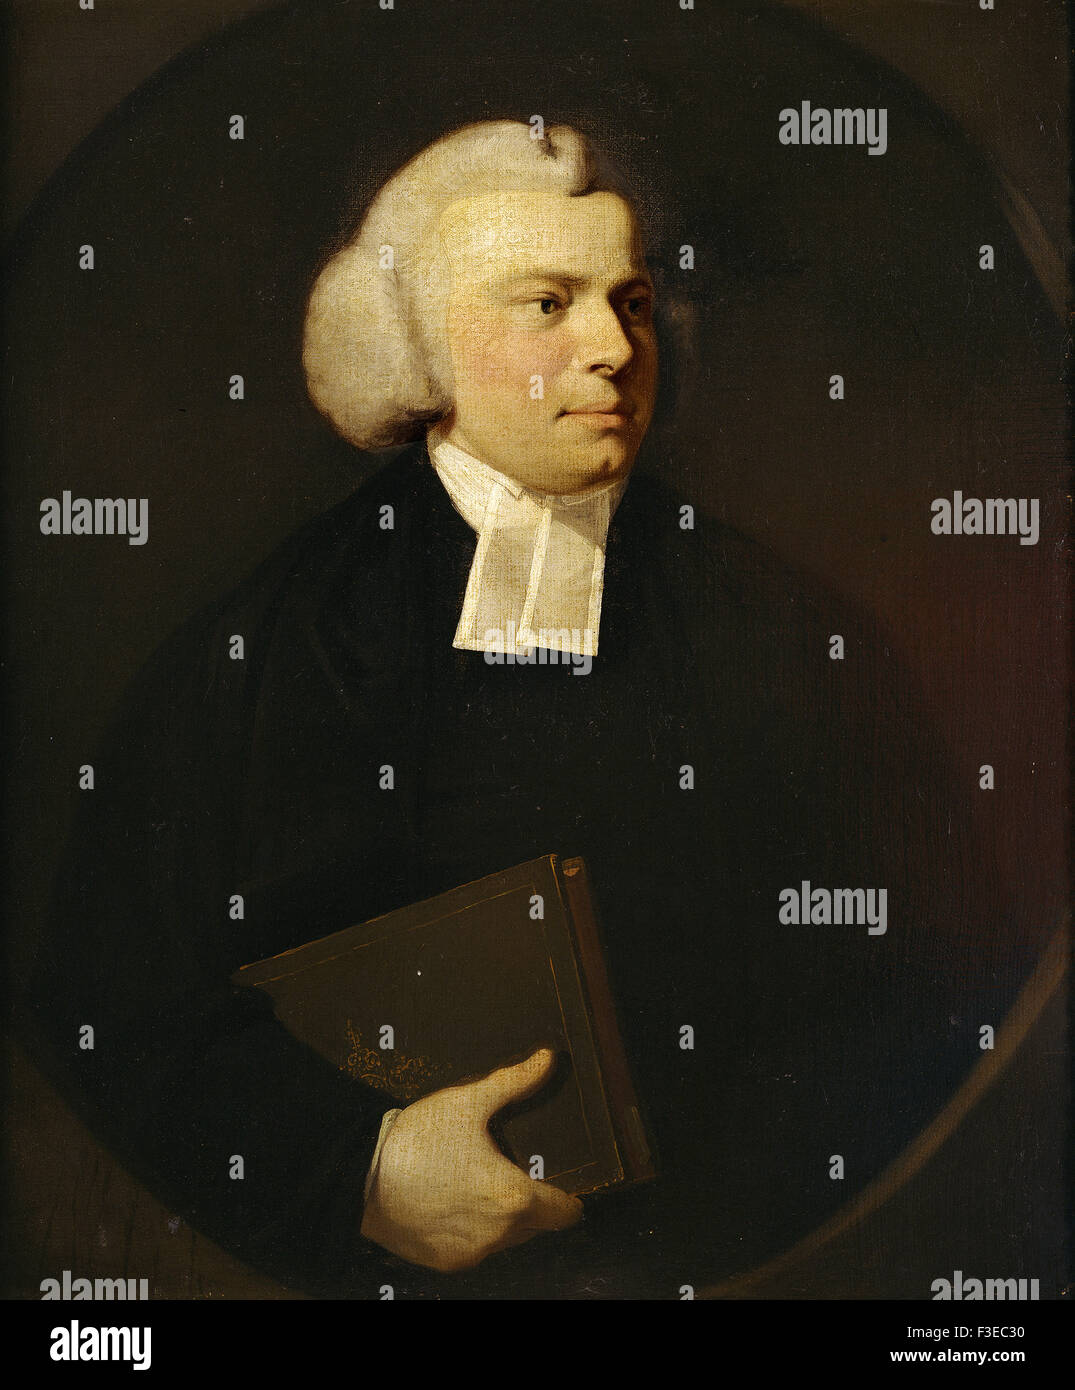 Sir Joshua Reynolds - Portrait of a Clergyman - Stock Image